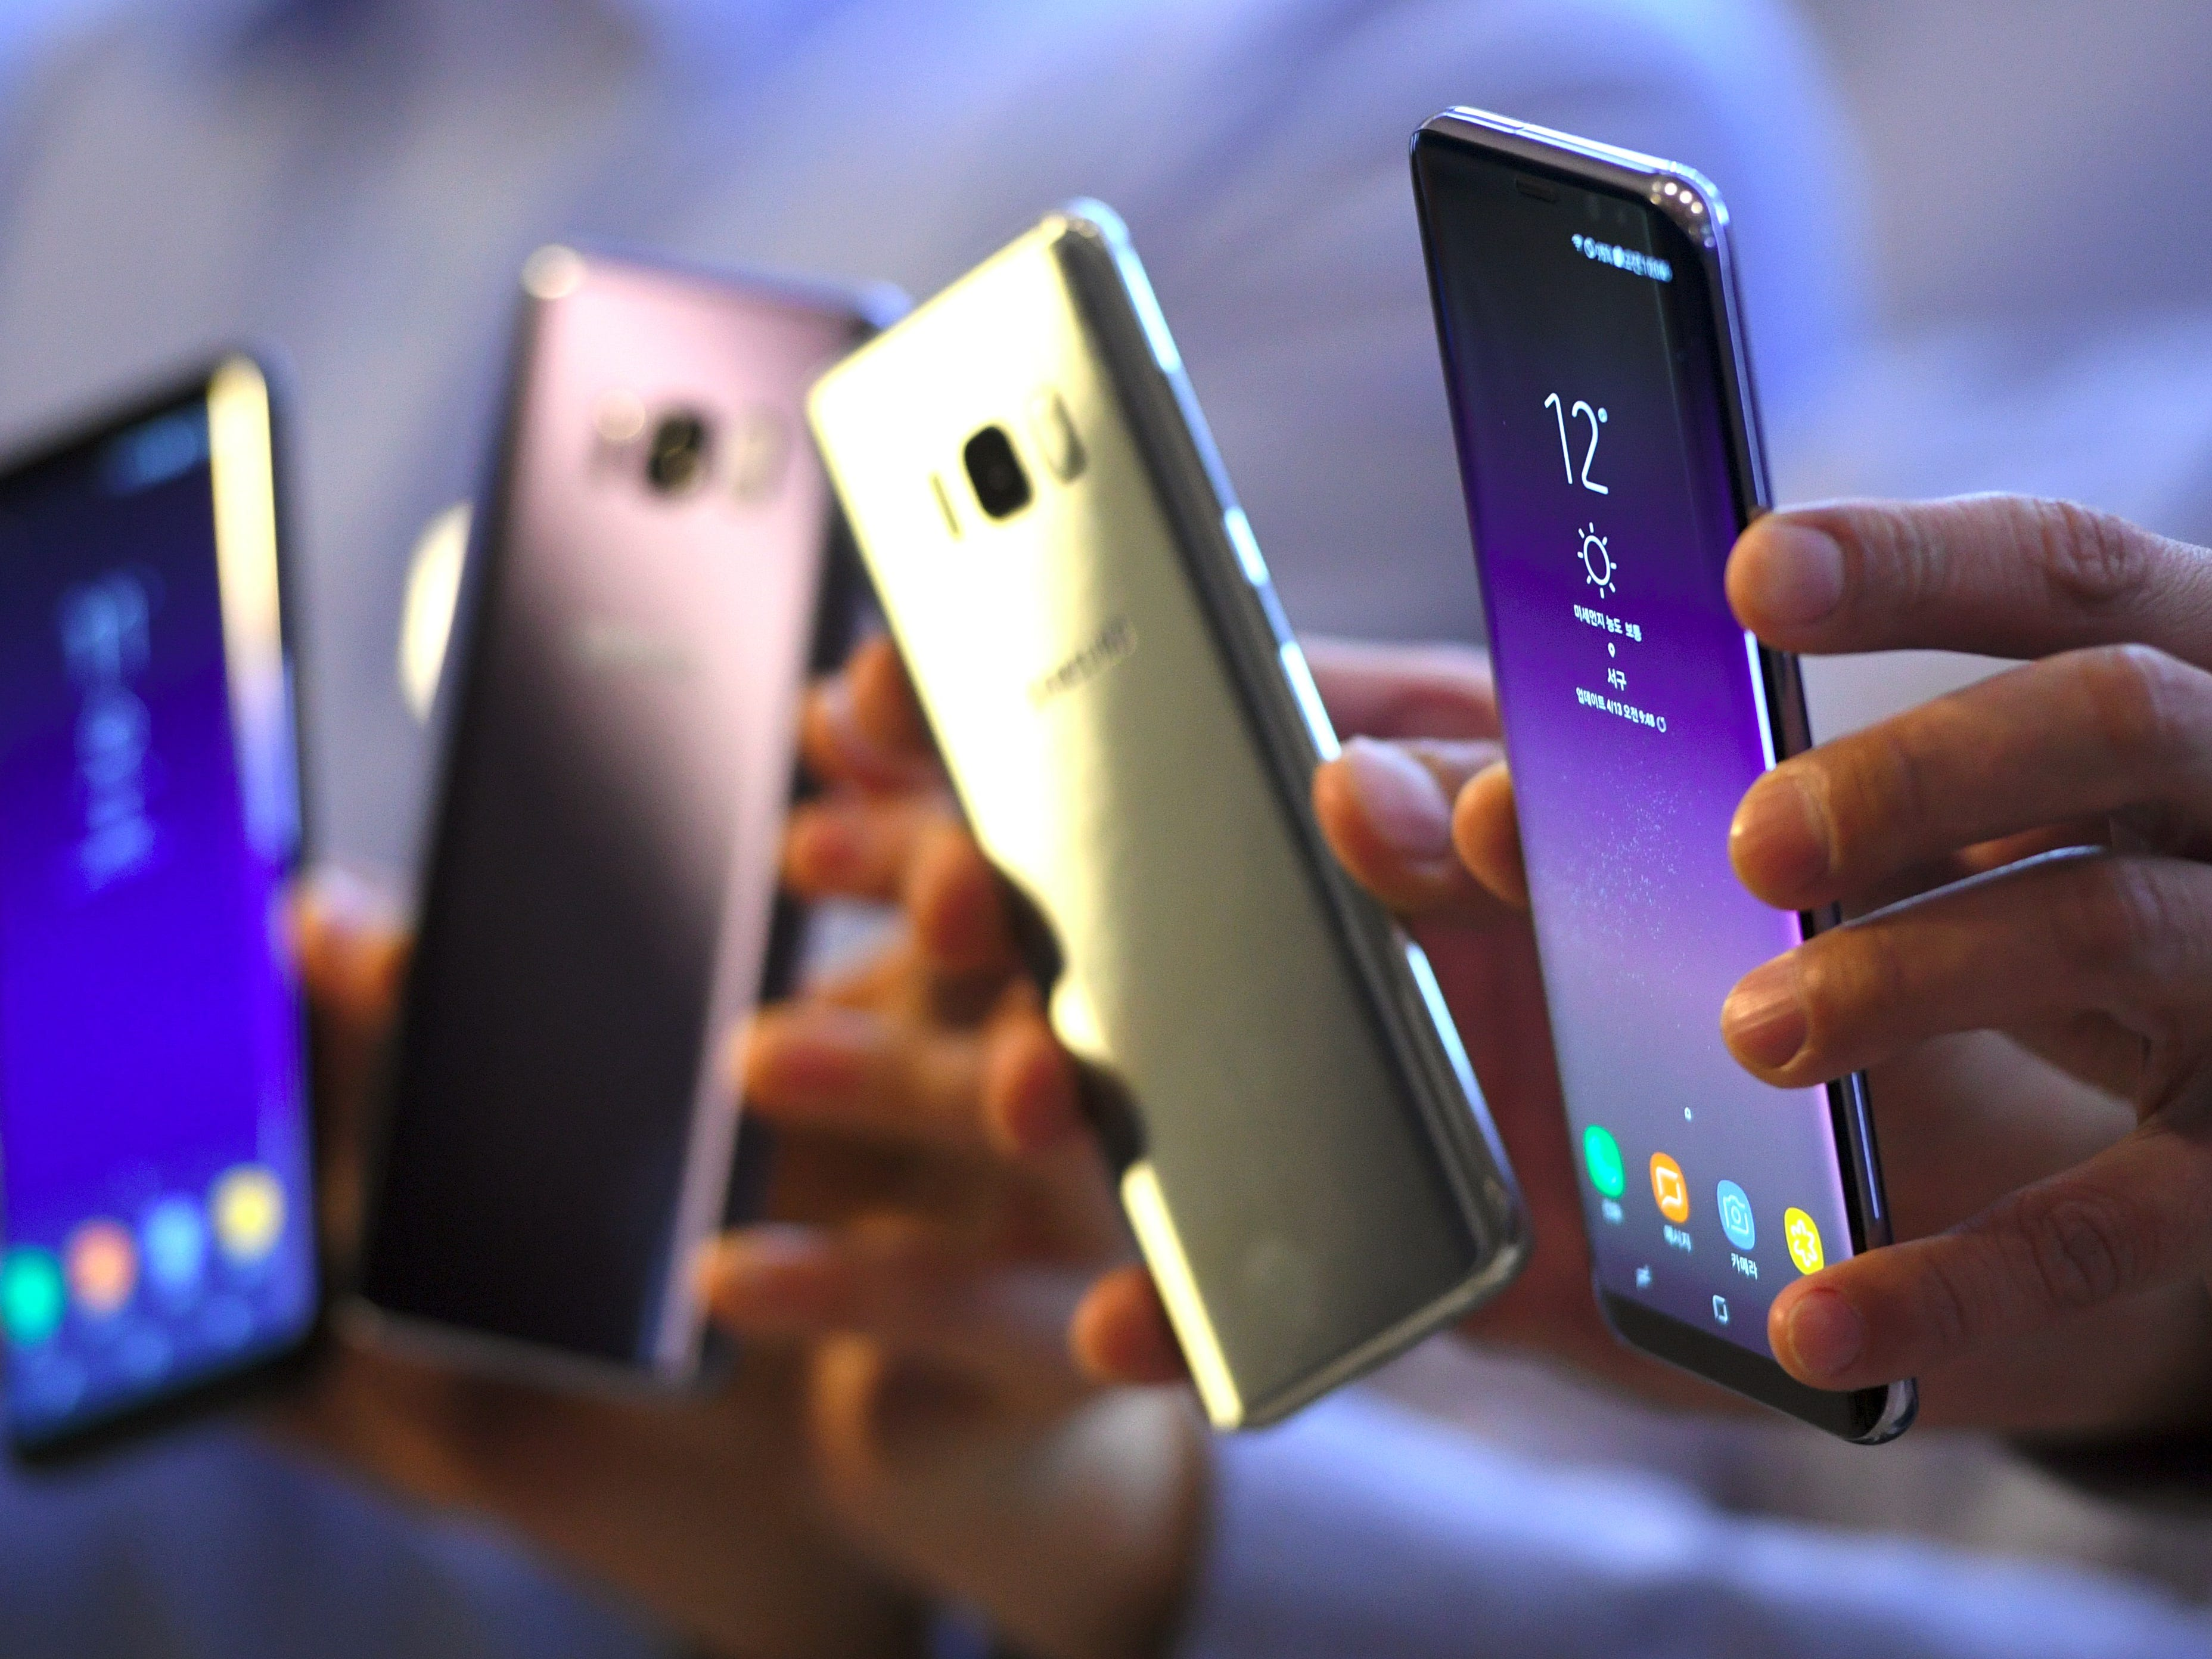 Samsung Galaxy S8 smartphones during a showcase to mark the domestic launch of Samsung Electronics' latest flagship smartphone Galaxy S8 in Seoul April 13, 2017.